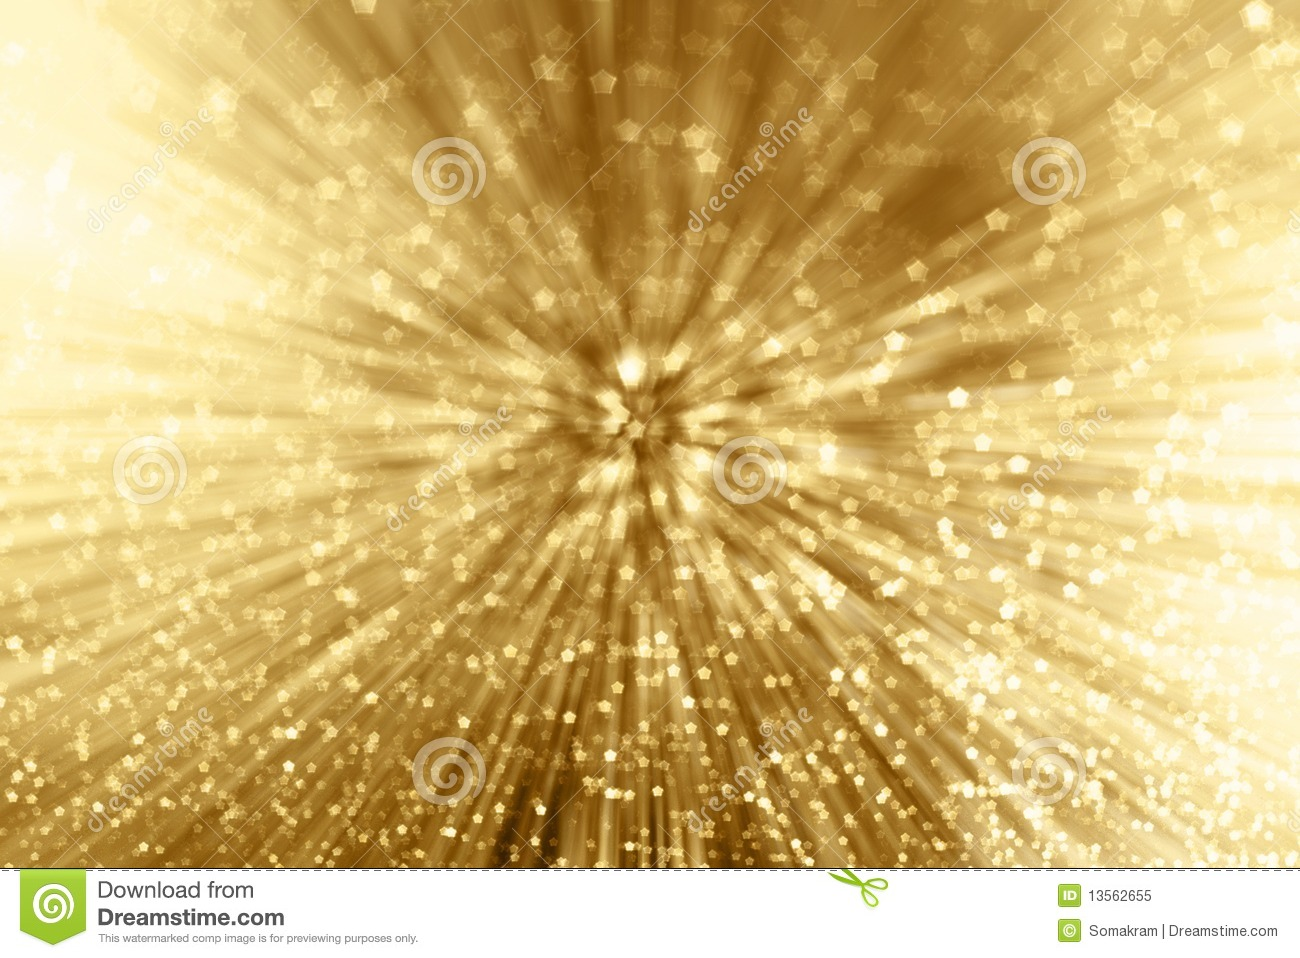 Free Photography Stock Gold Sparkle Zoom Stock Image Image Of Background Shimmer 13562655